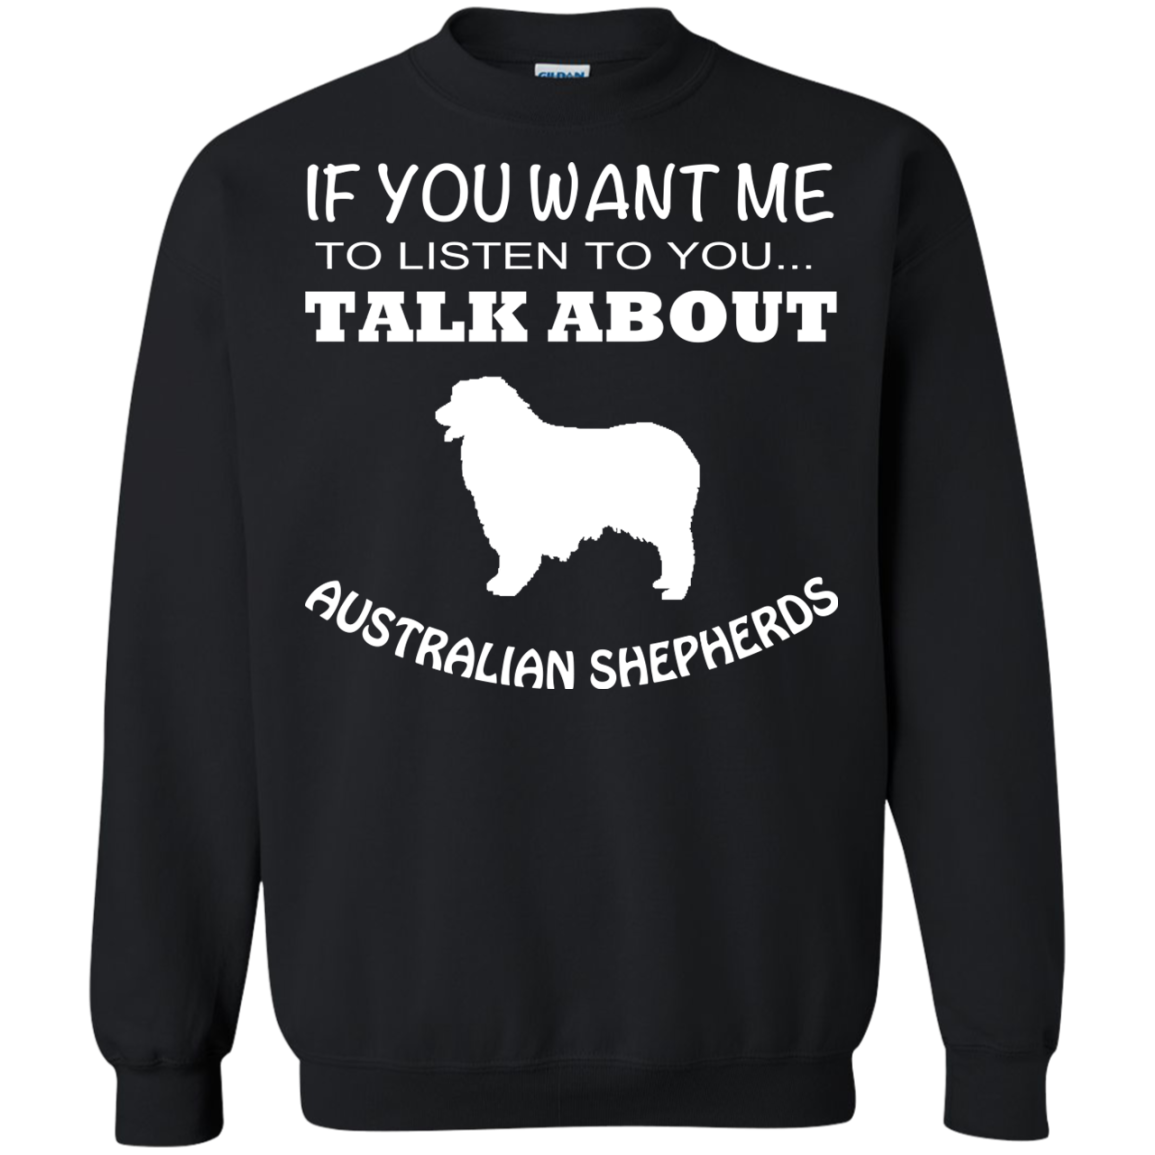 If You Want Me To Listen To You Talk About Australian Shepherds Sweatshirts